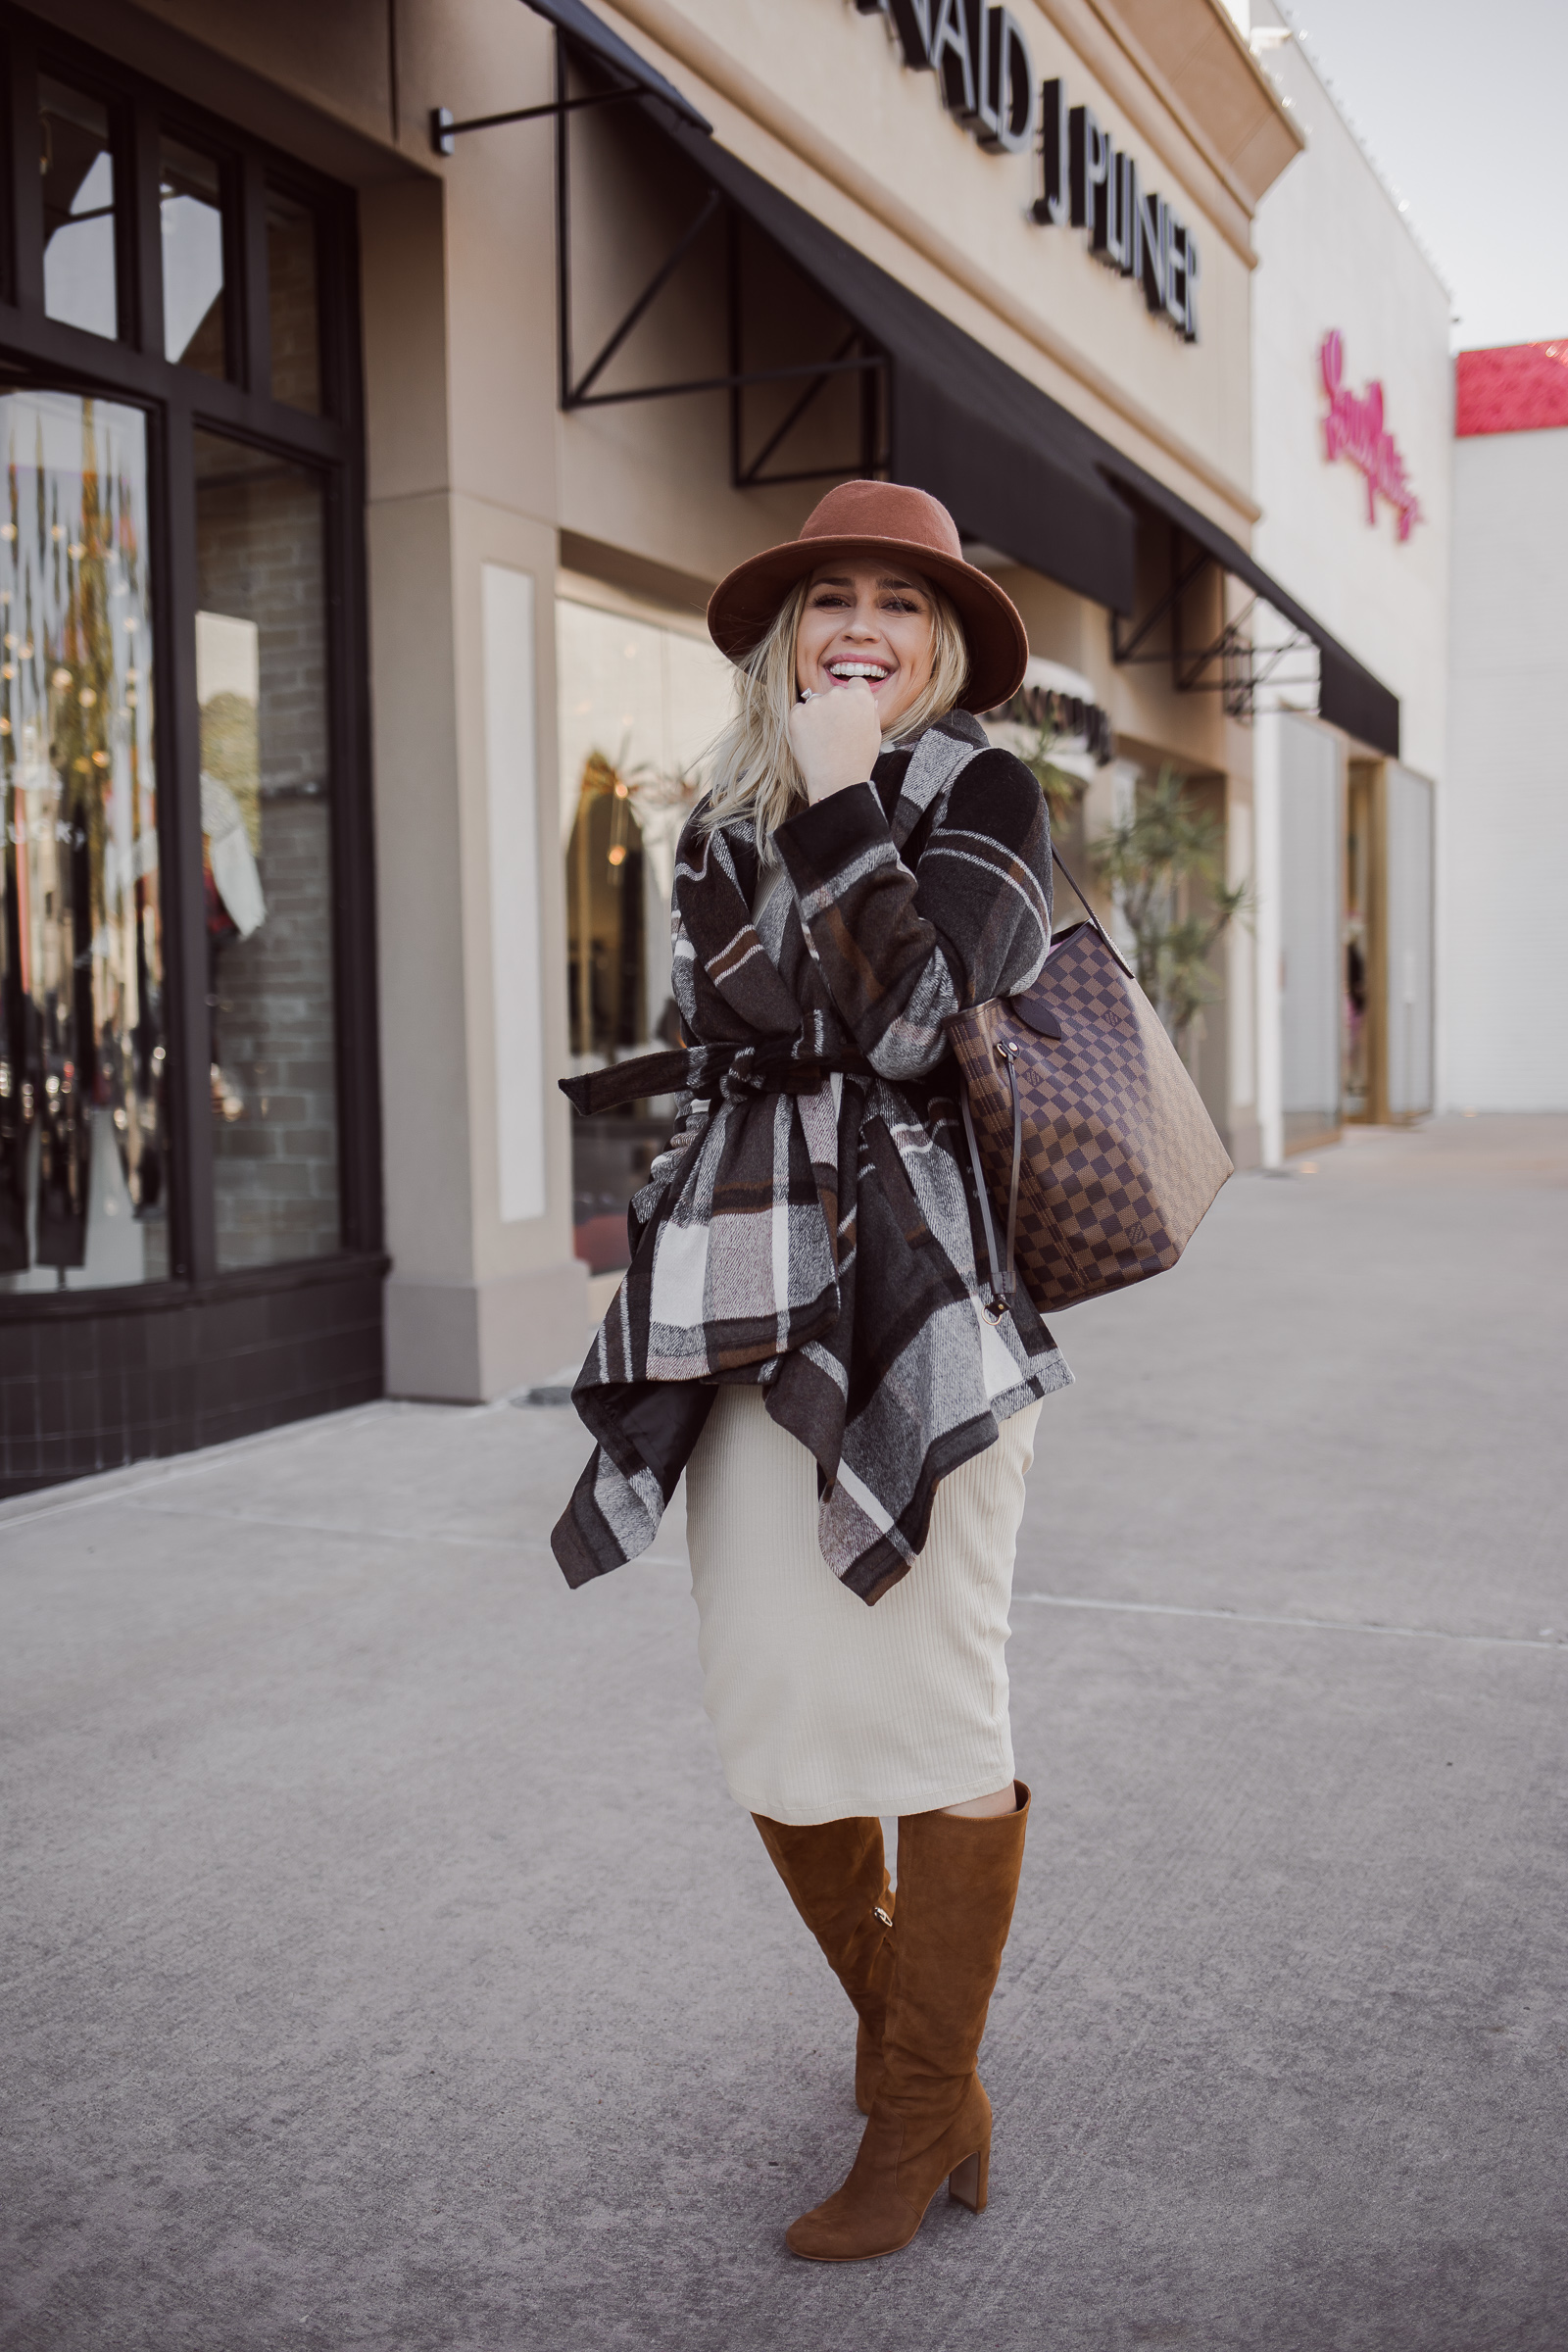 Houston fashion blogger Uptown with Elly Brown wears a Wrap Coat for the winter with a simple dress and knee high boots.